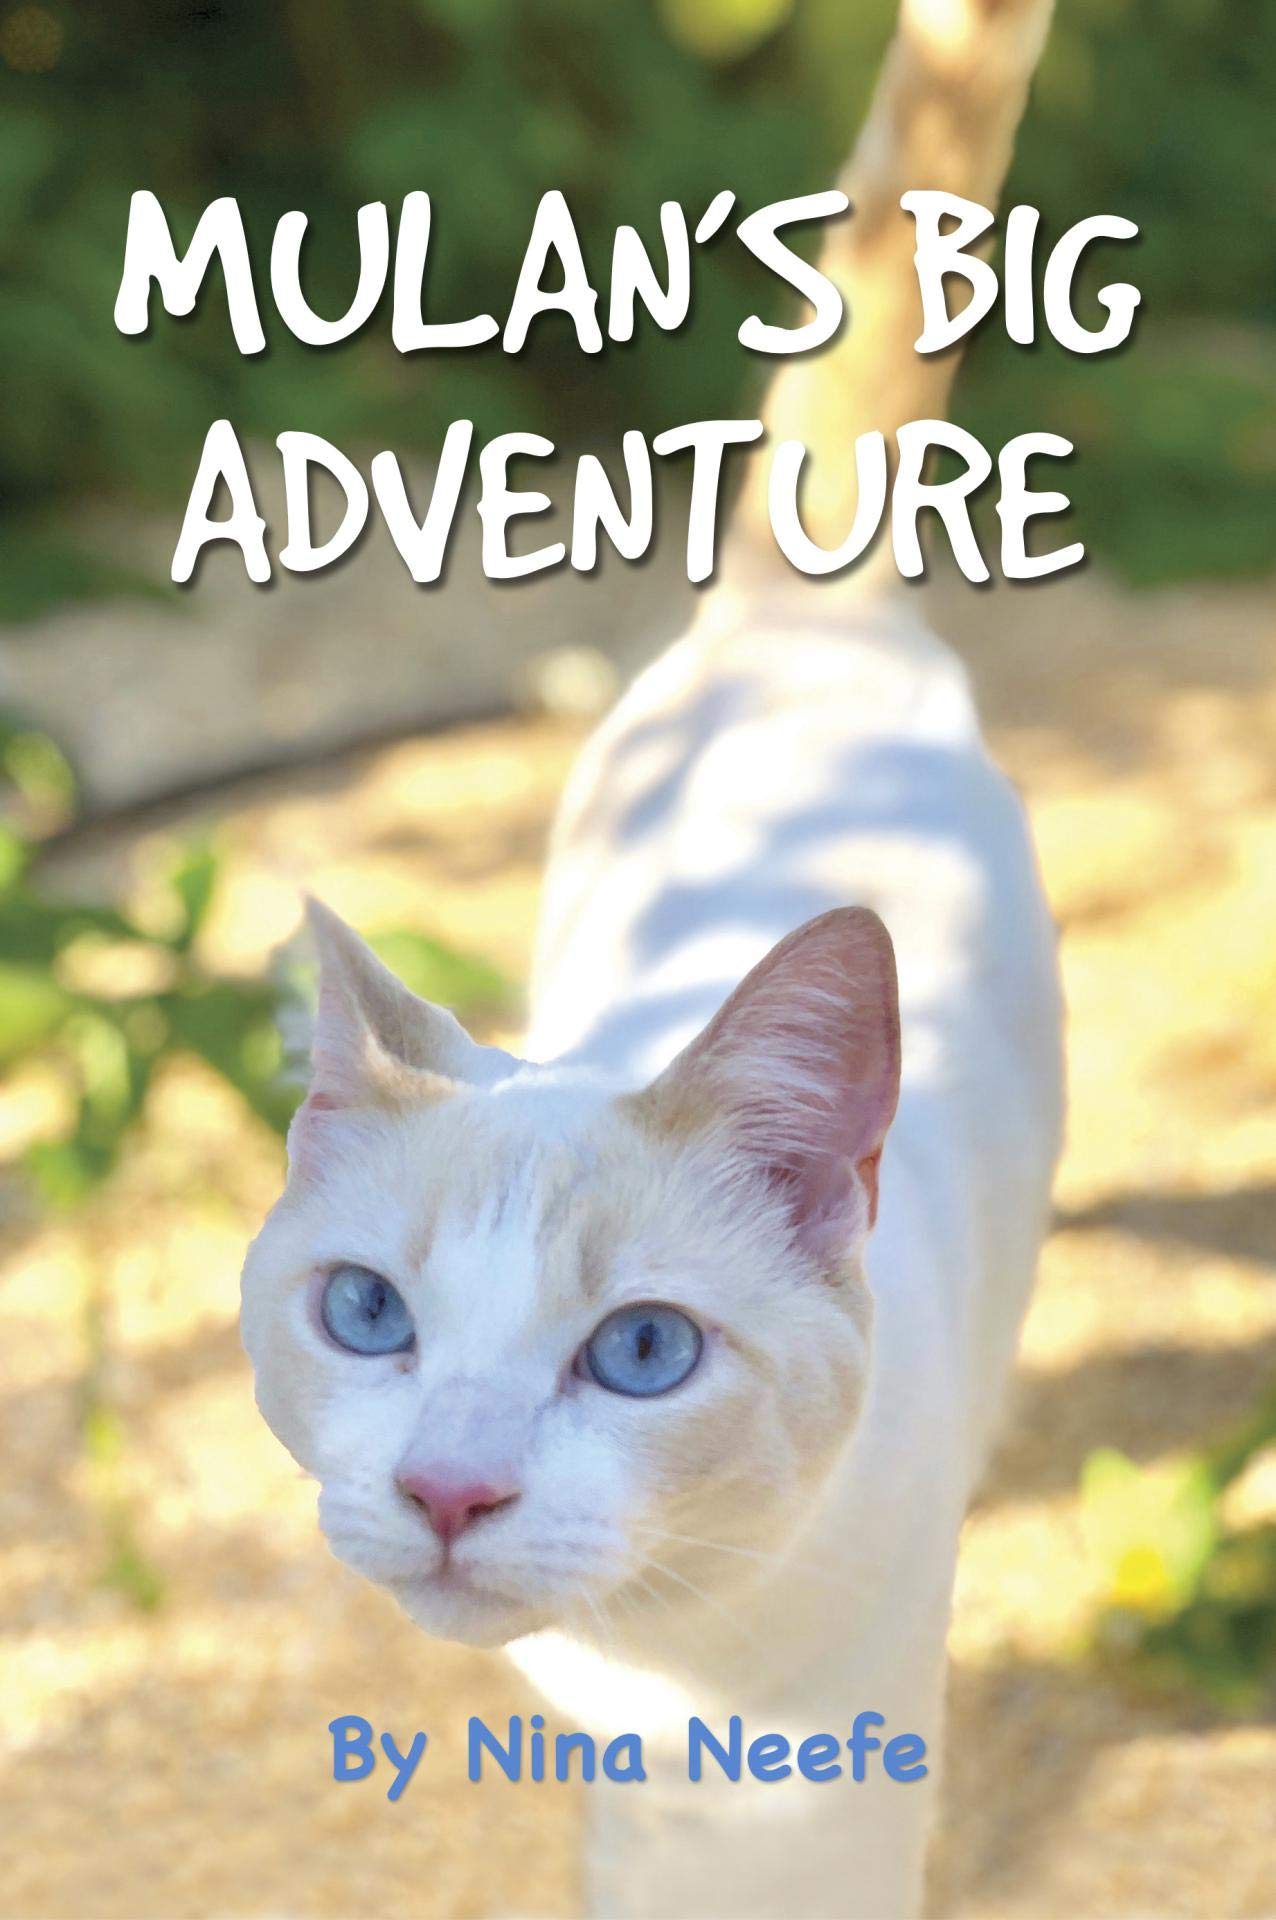 Mulan's Big Adventure: The True Story of a Lost Kitty (Nina's Cat Tales Book 1)